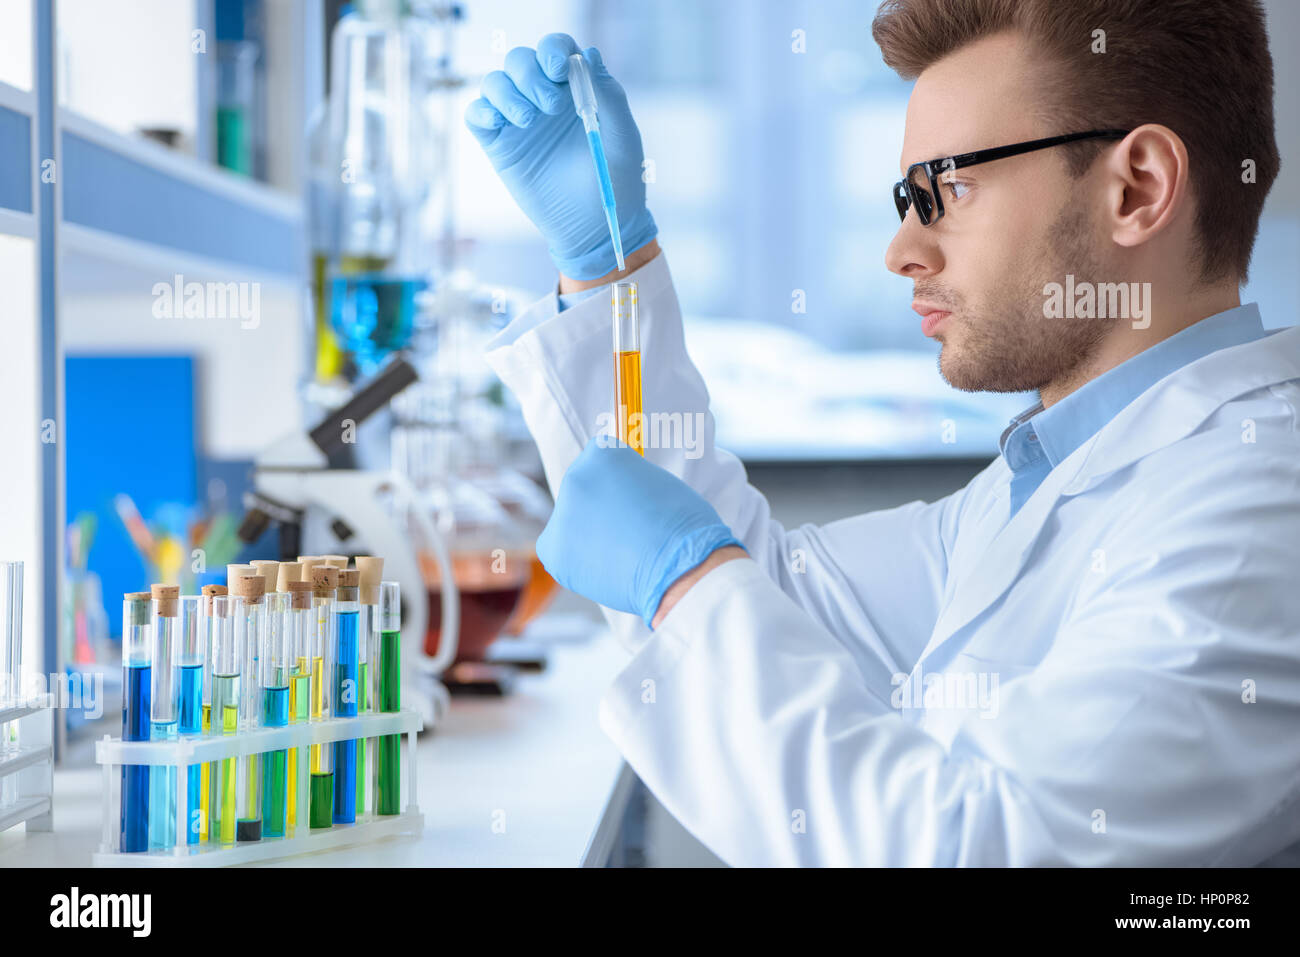 chemist making experiment in laboratory - Stock Image